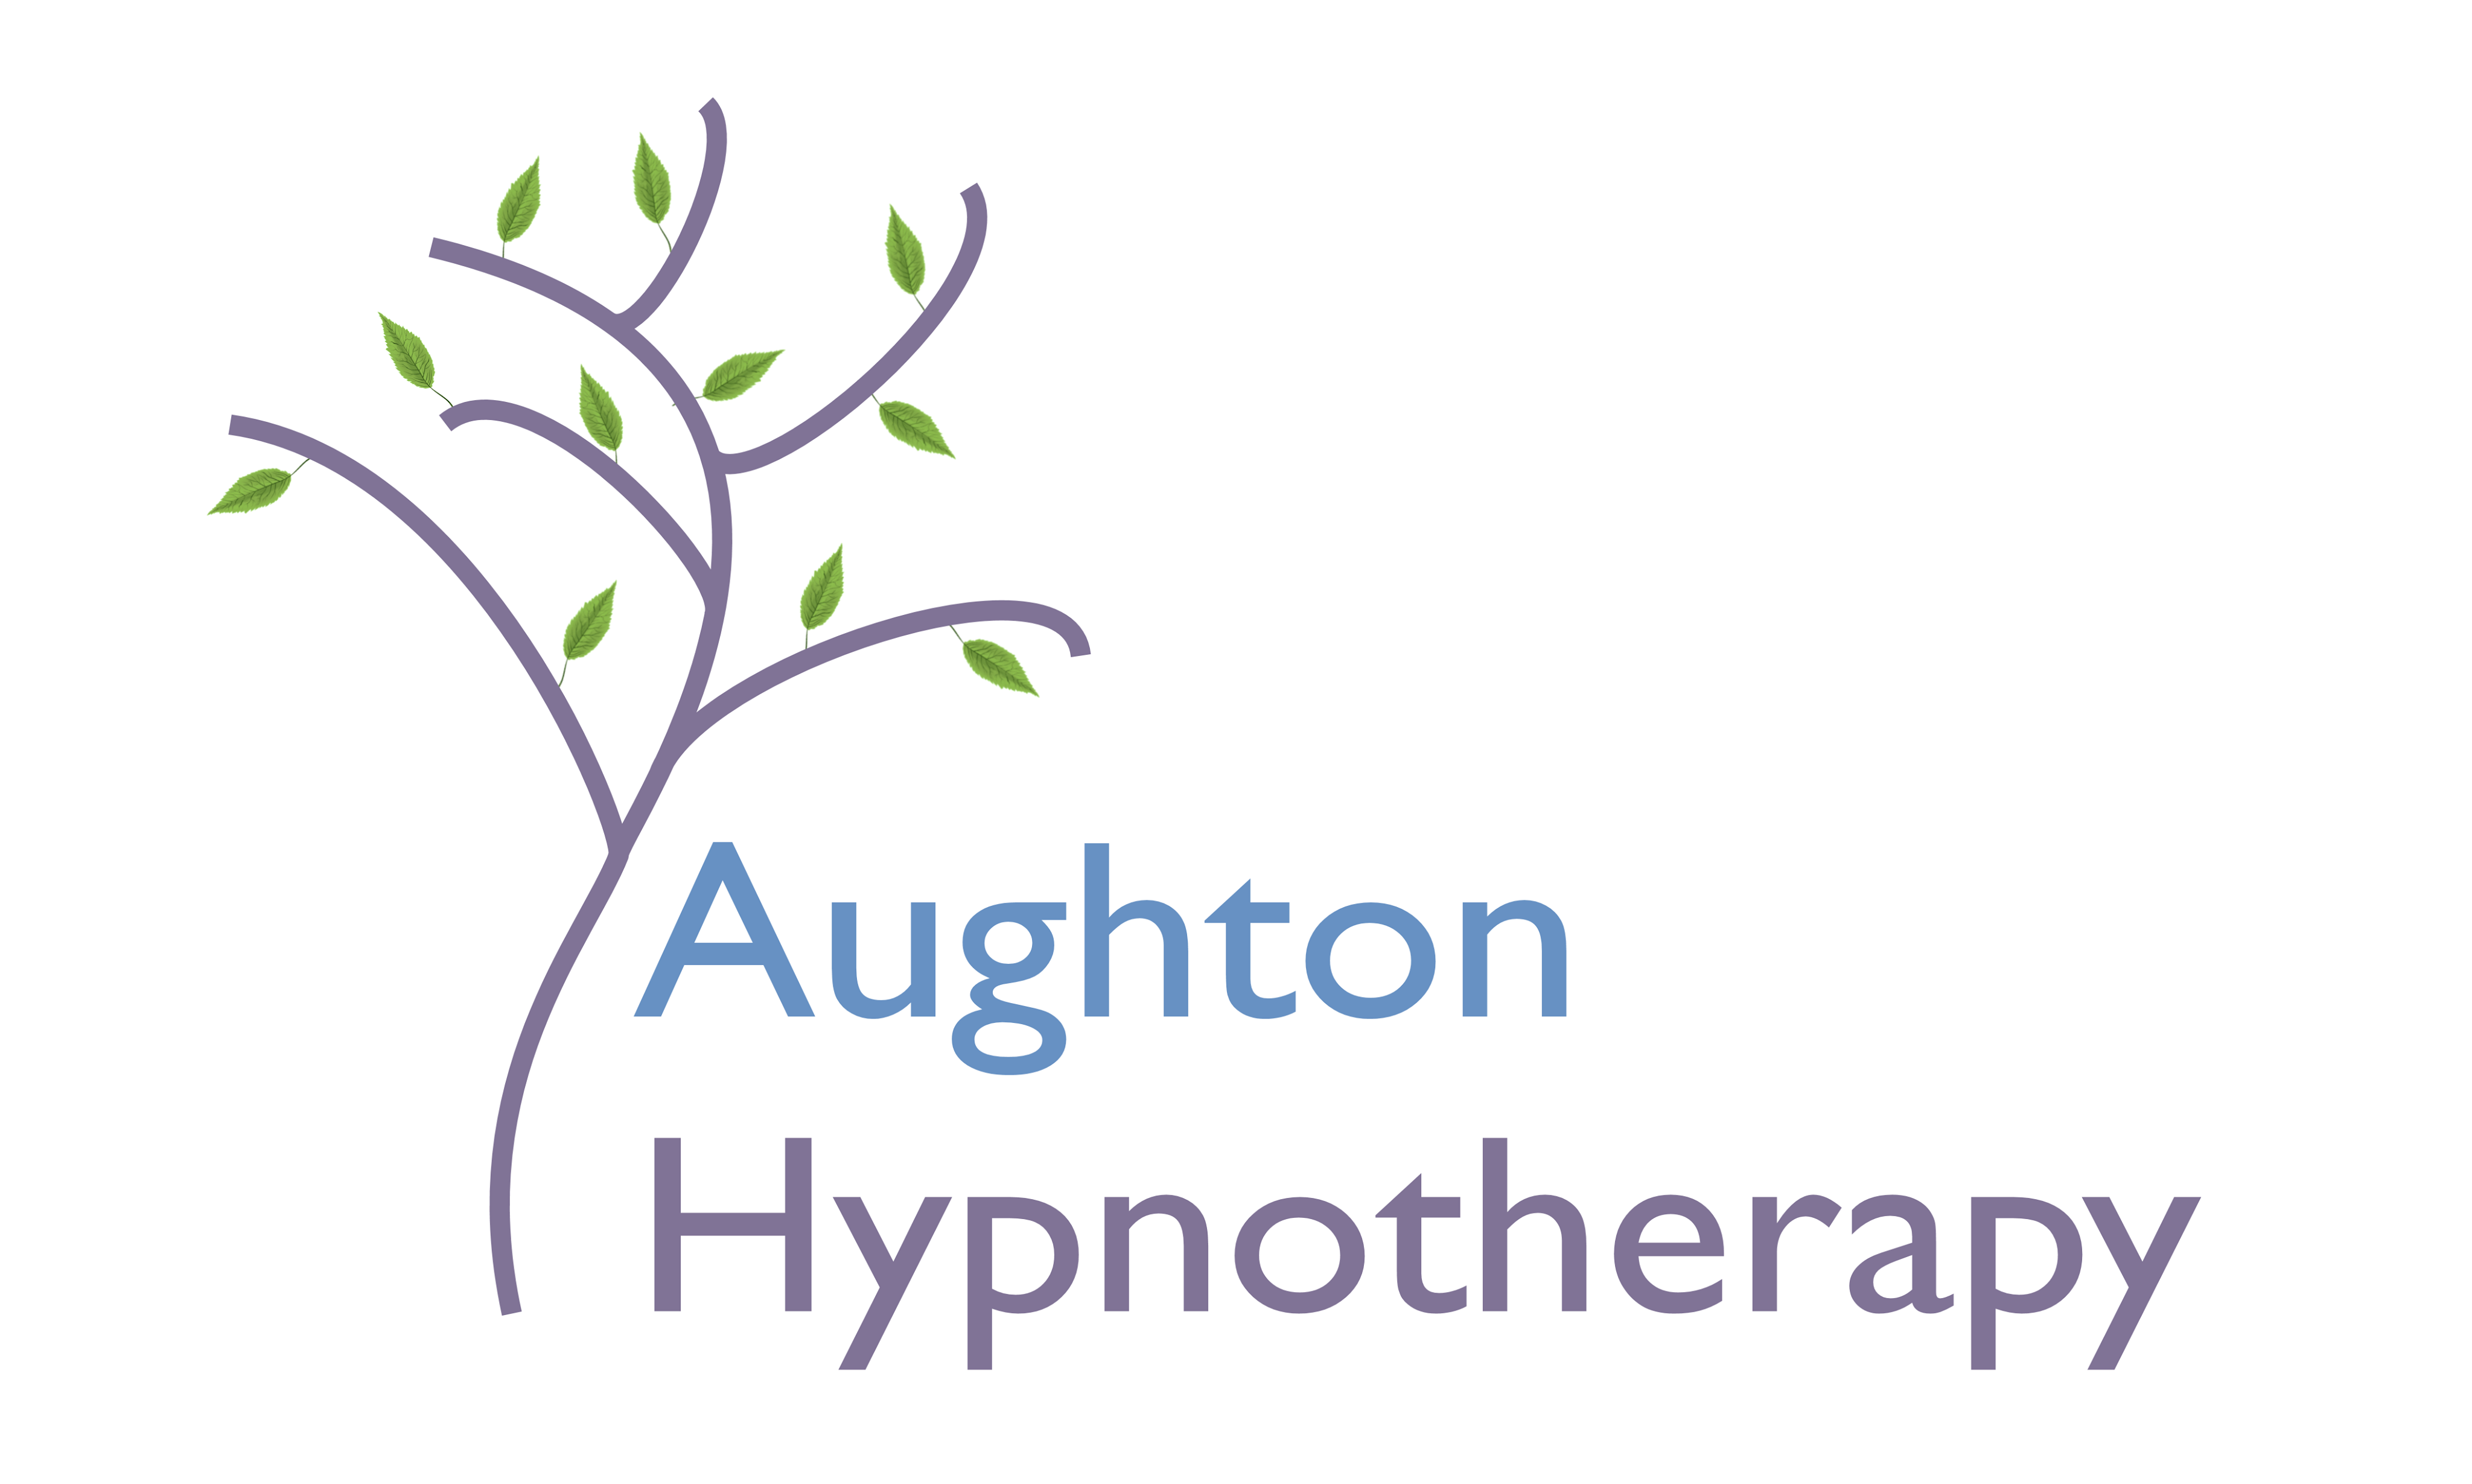 Aughton Hypnotherapy